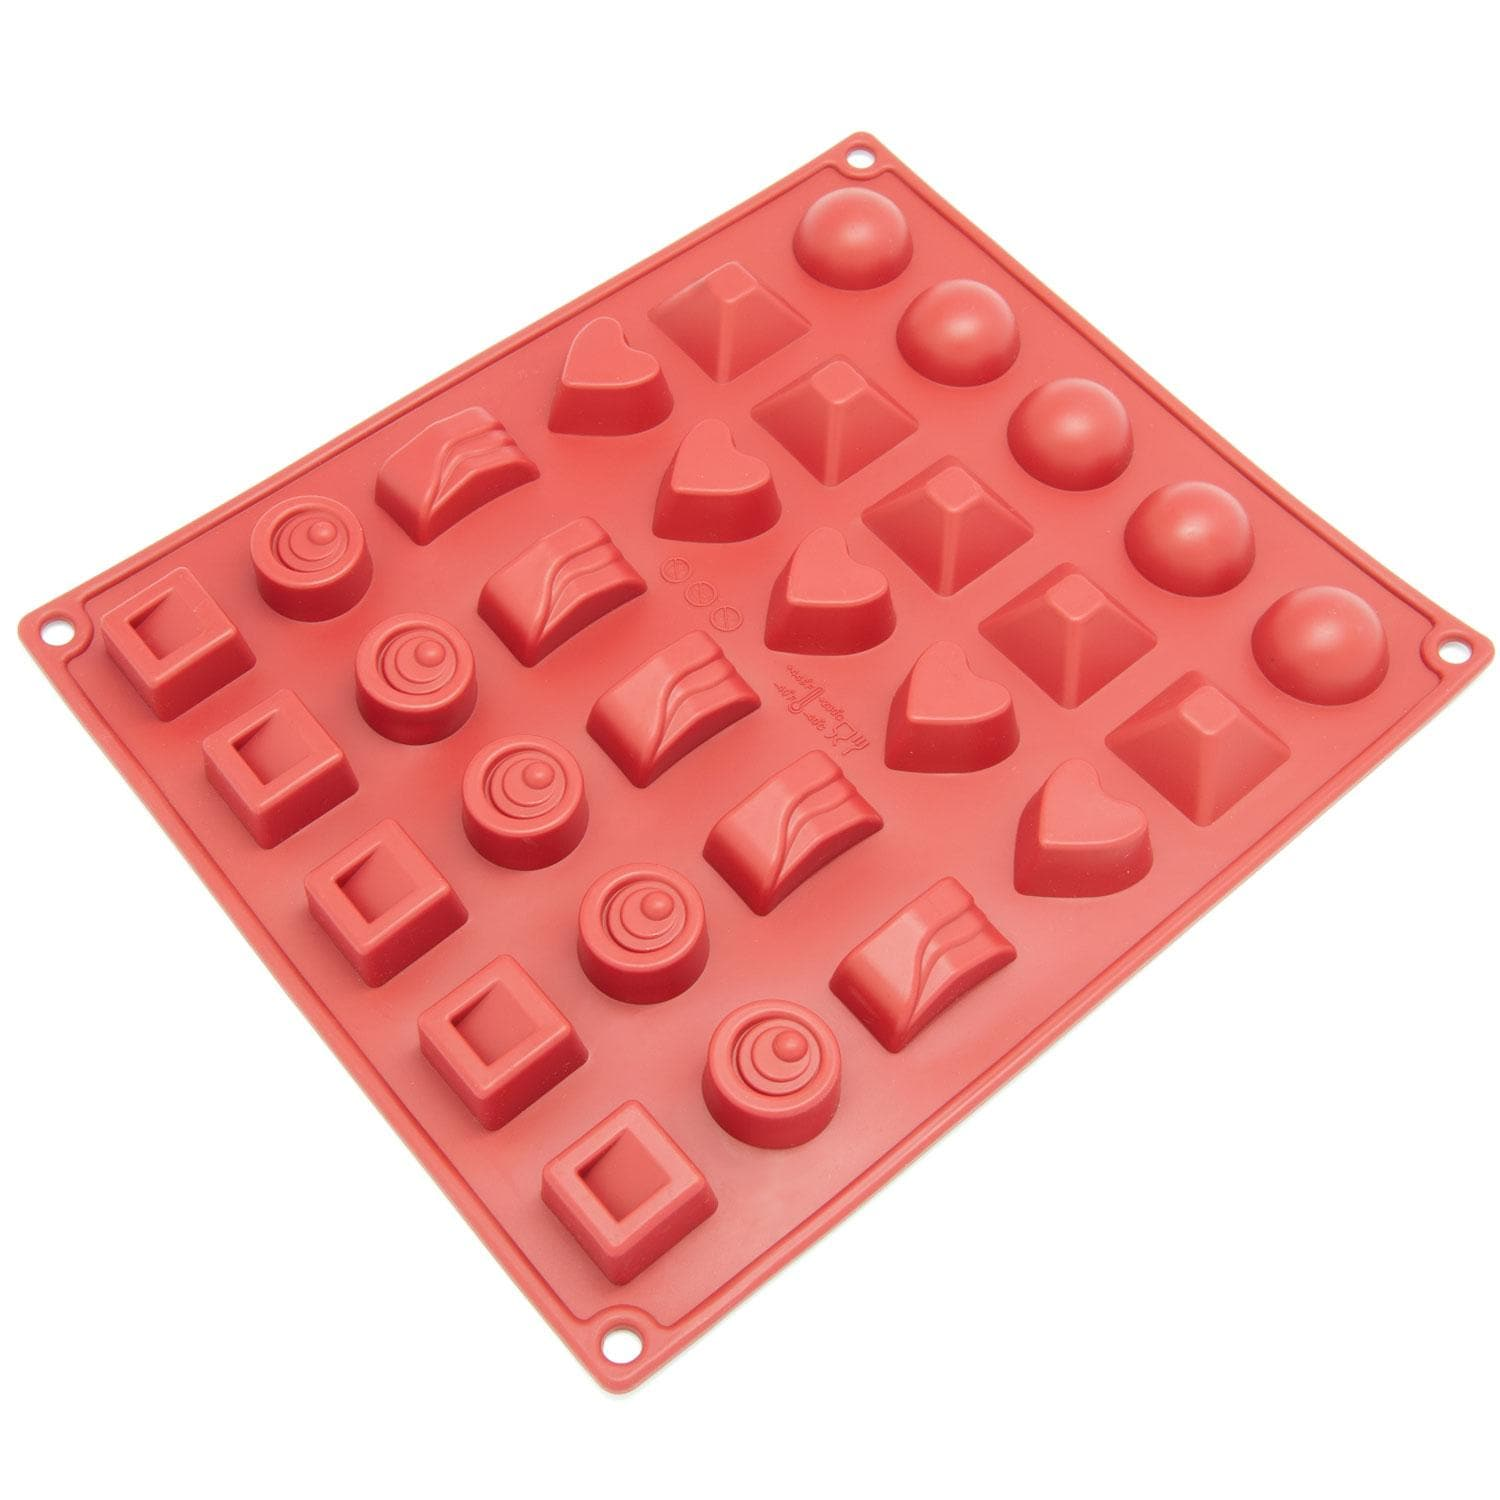 Freshware 30-cavity Silicone Chocolate, Jelly and Candy Mold